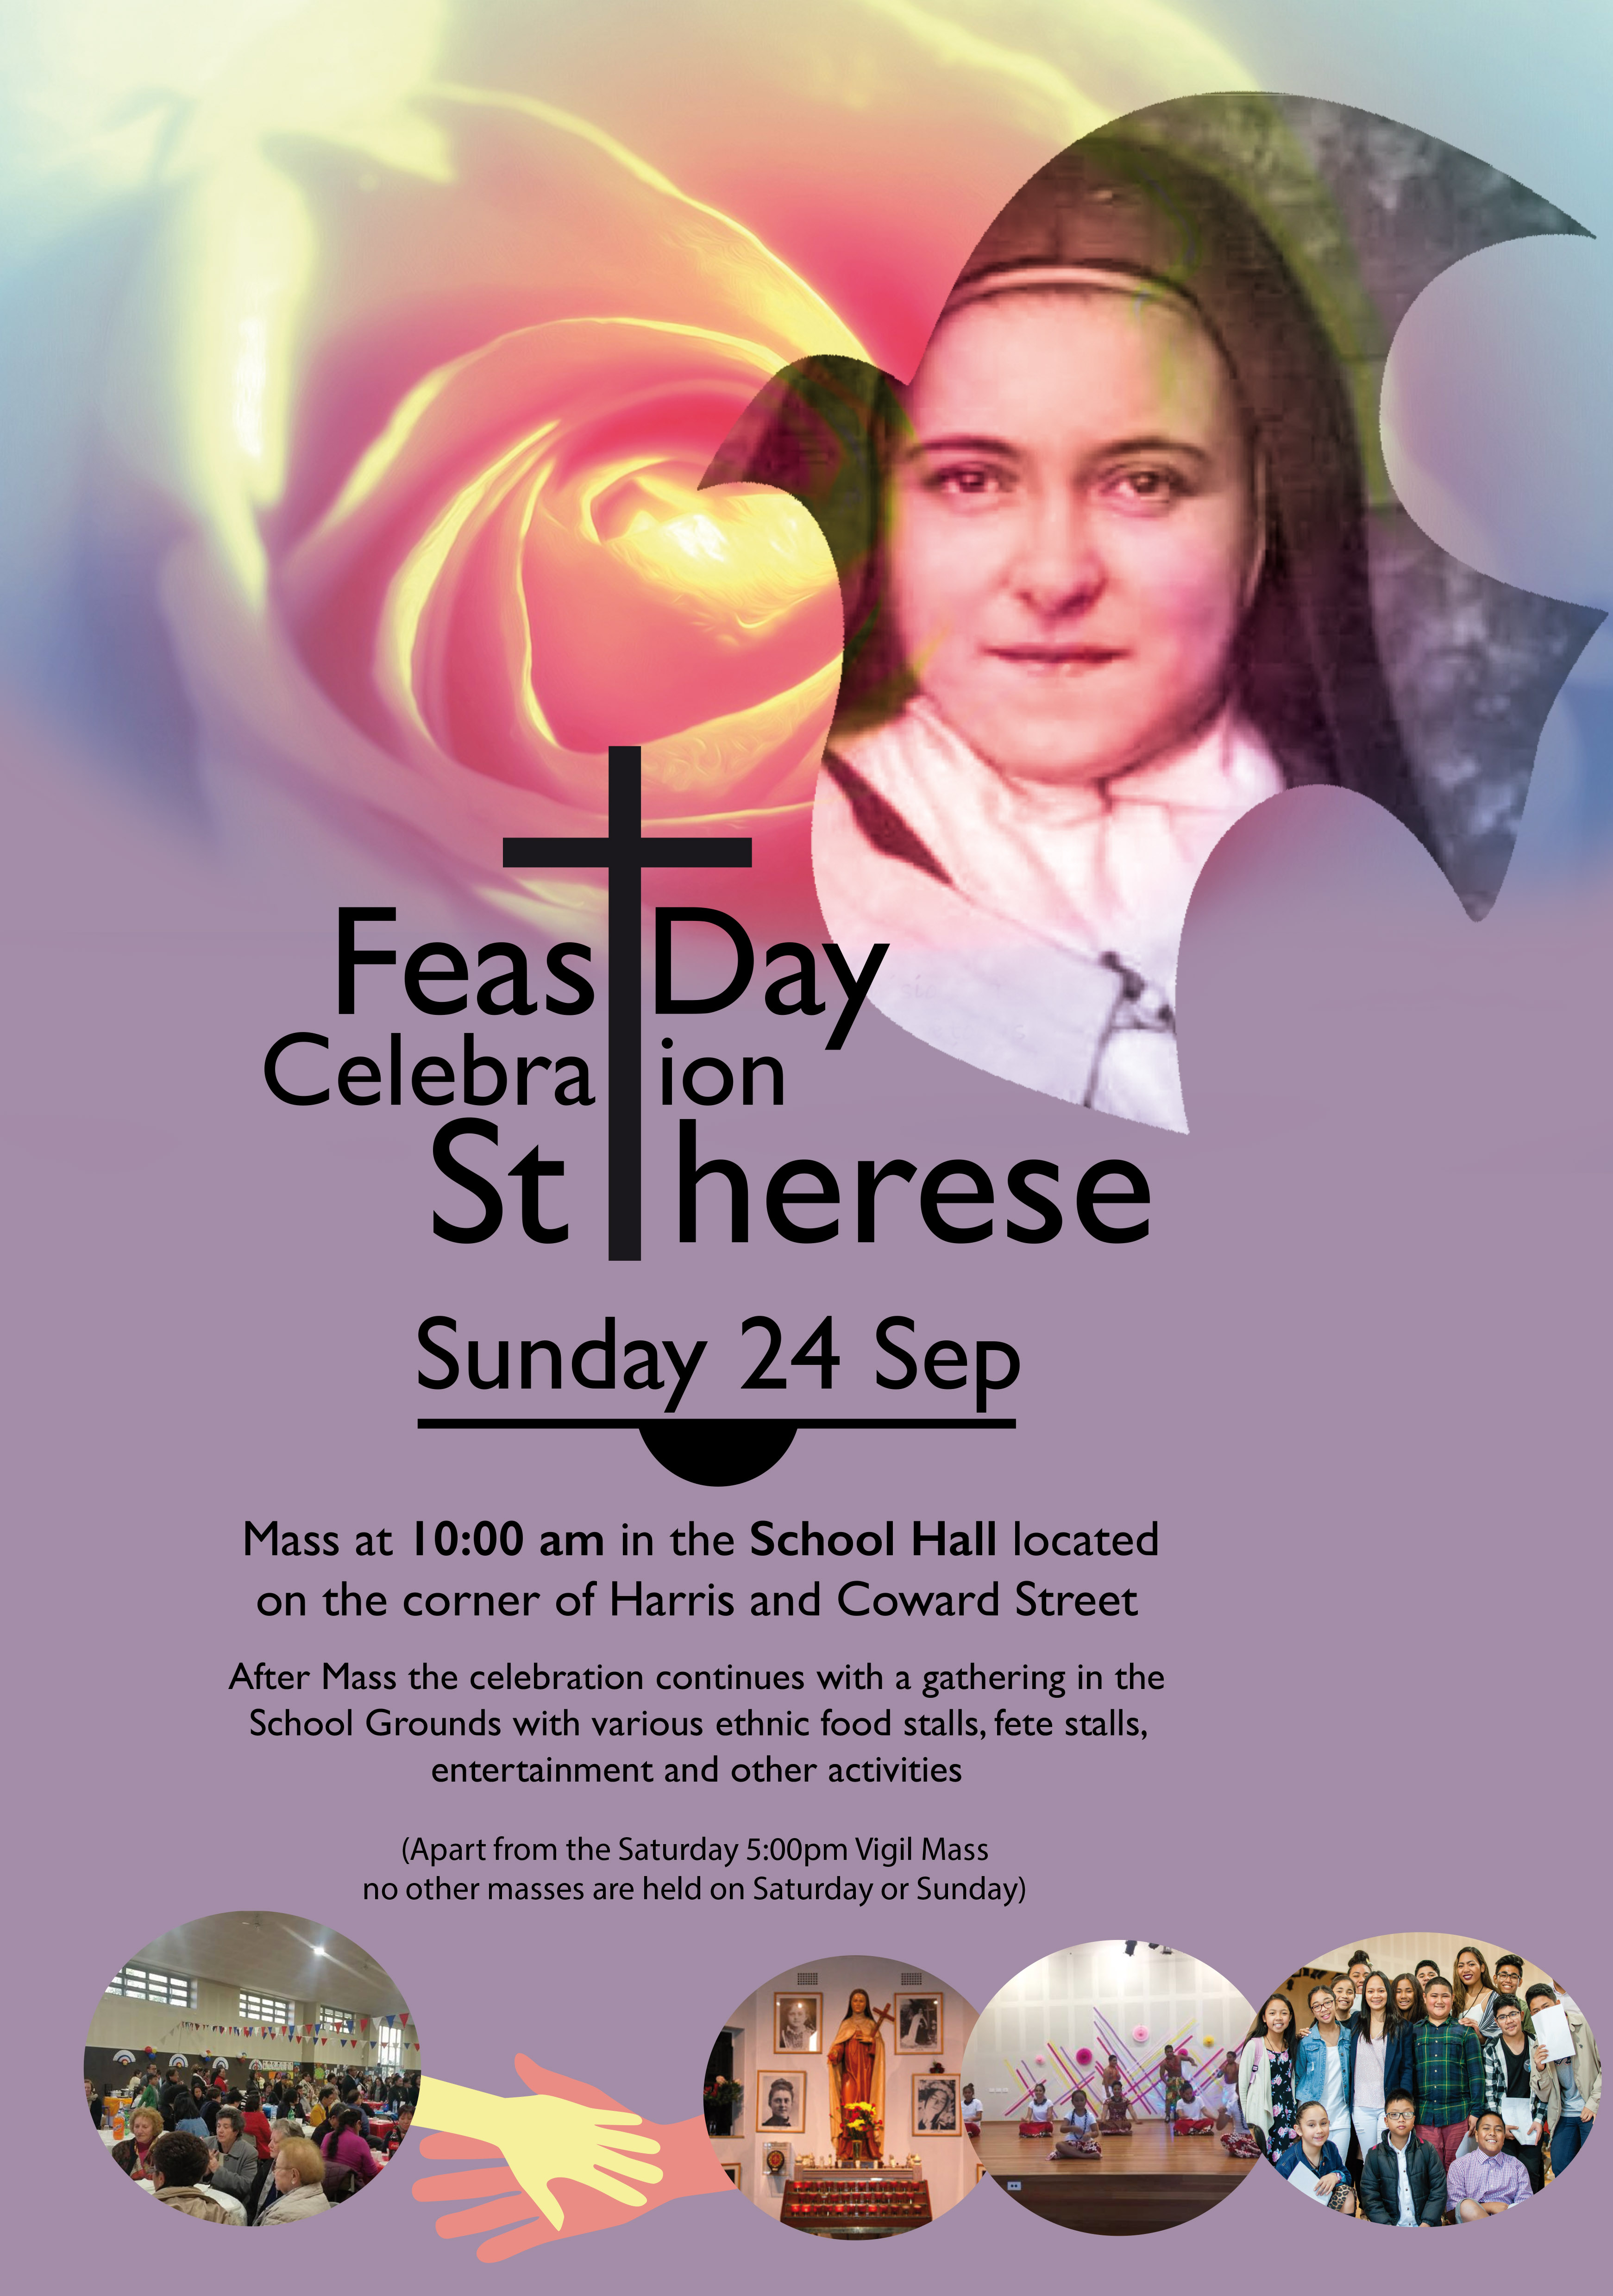 Feast Day Celebration of St Therese